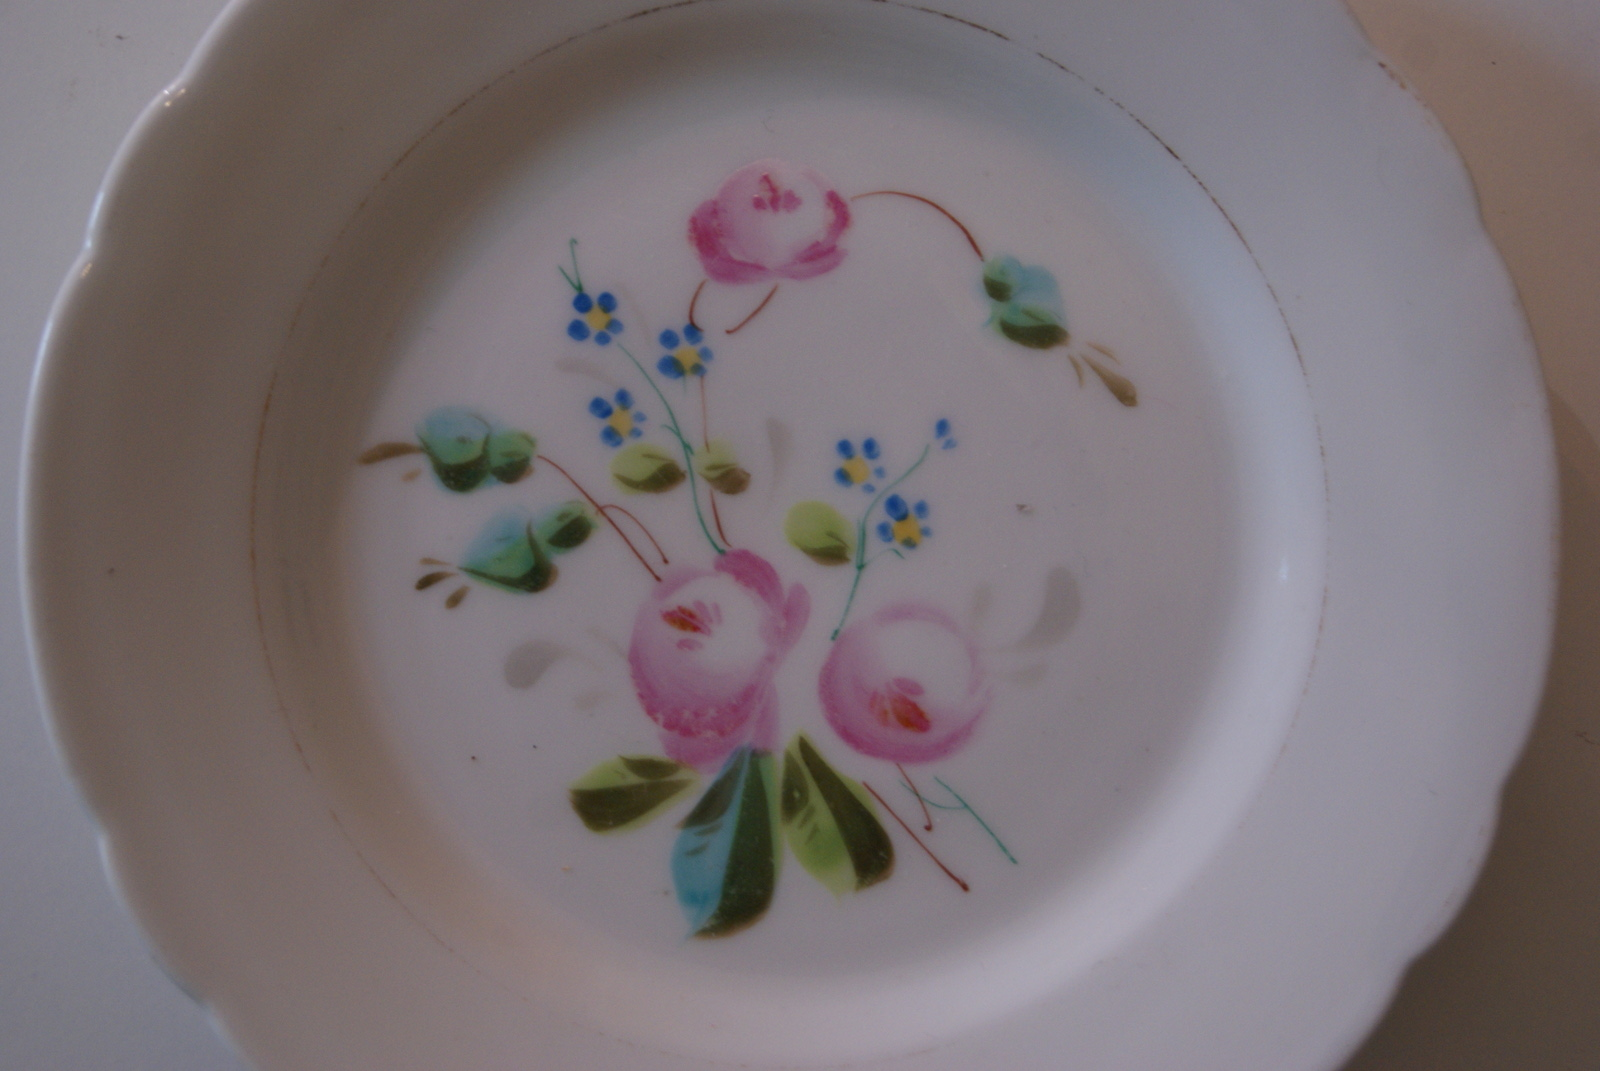 Fraureuth plate with bouquet, roses with blue flowers and leaves